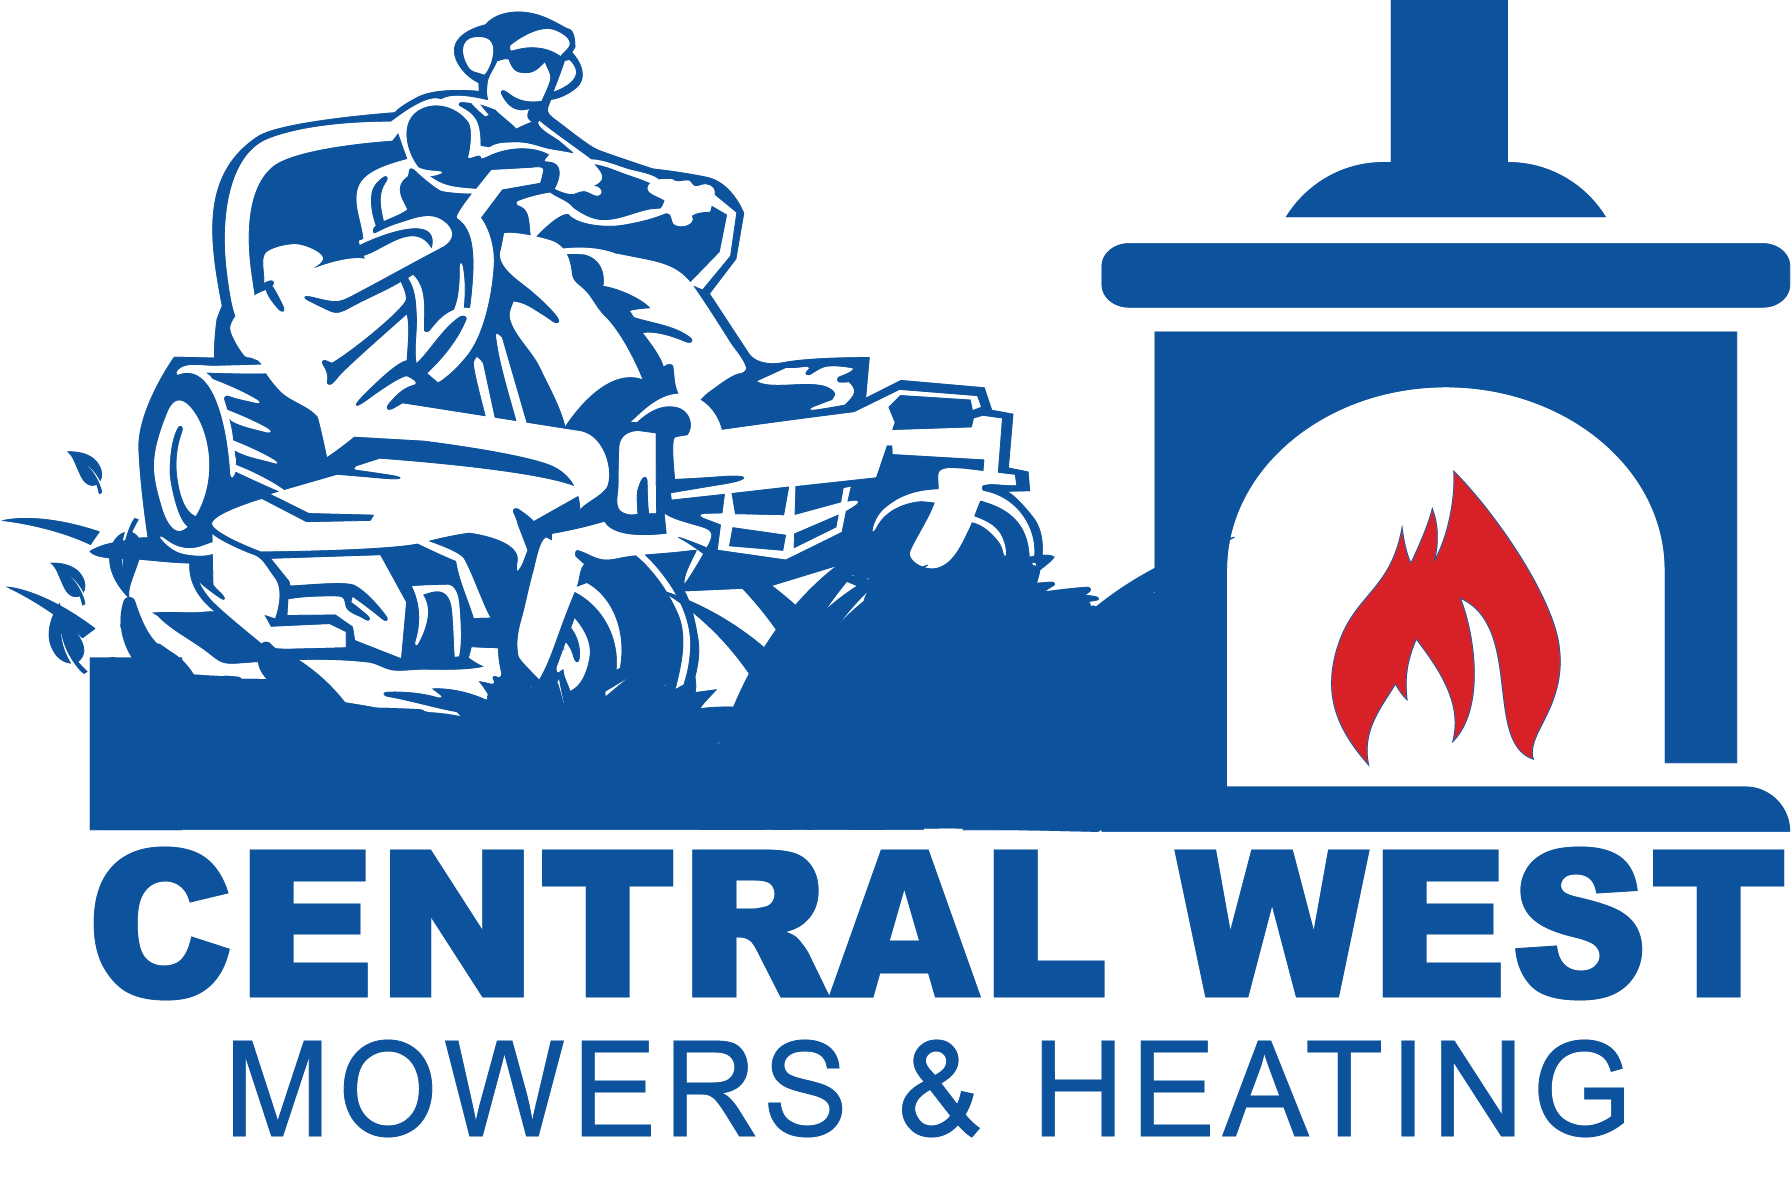 Central West Mowers and Heating